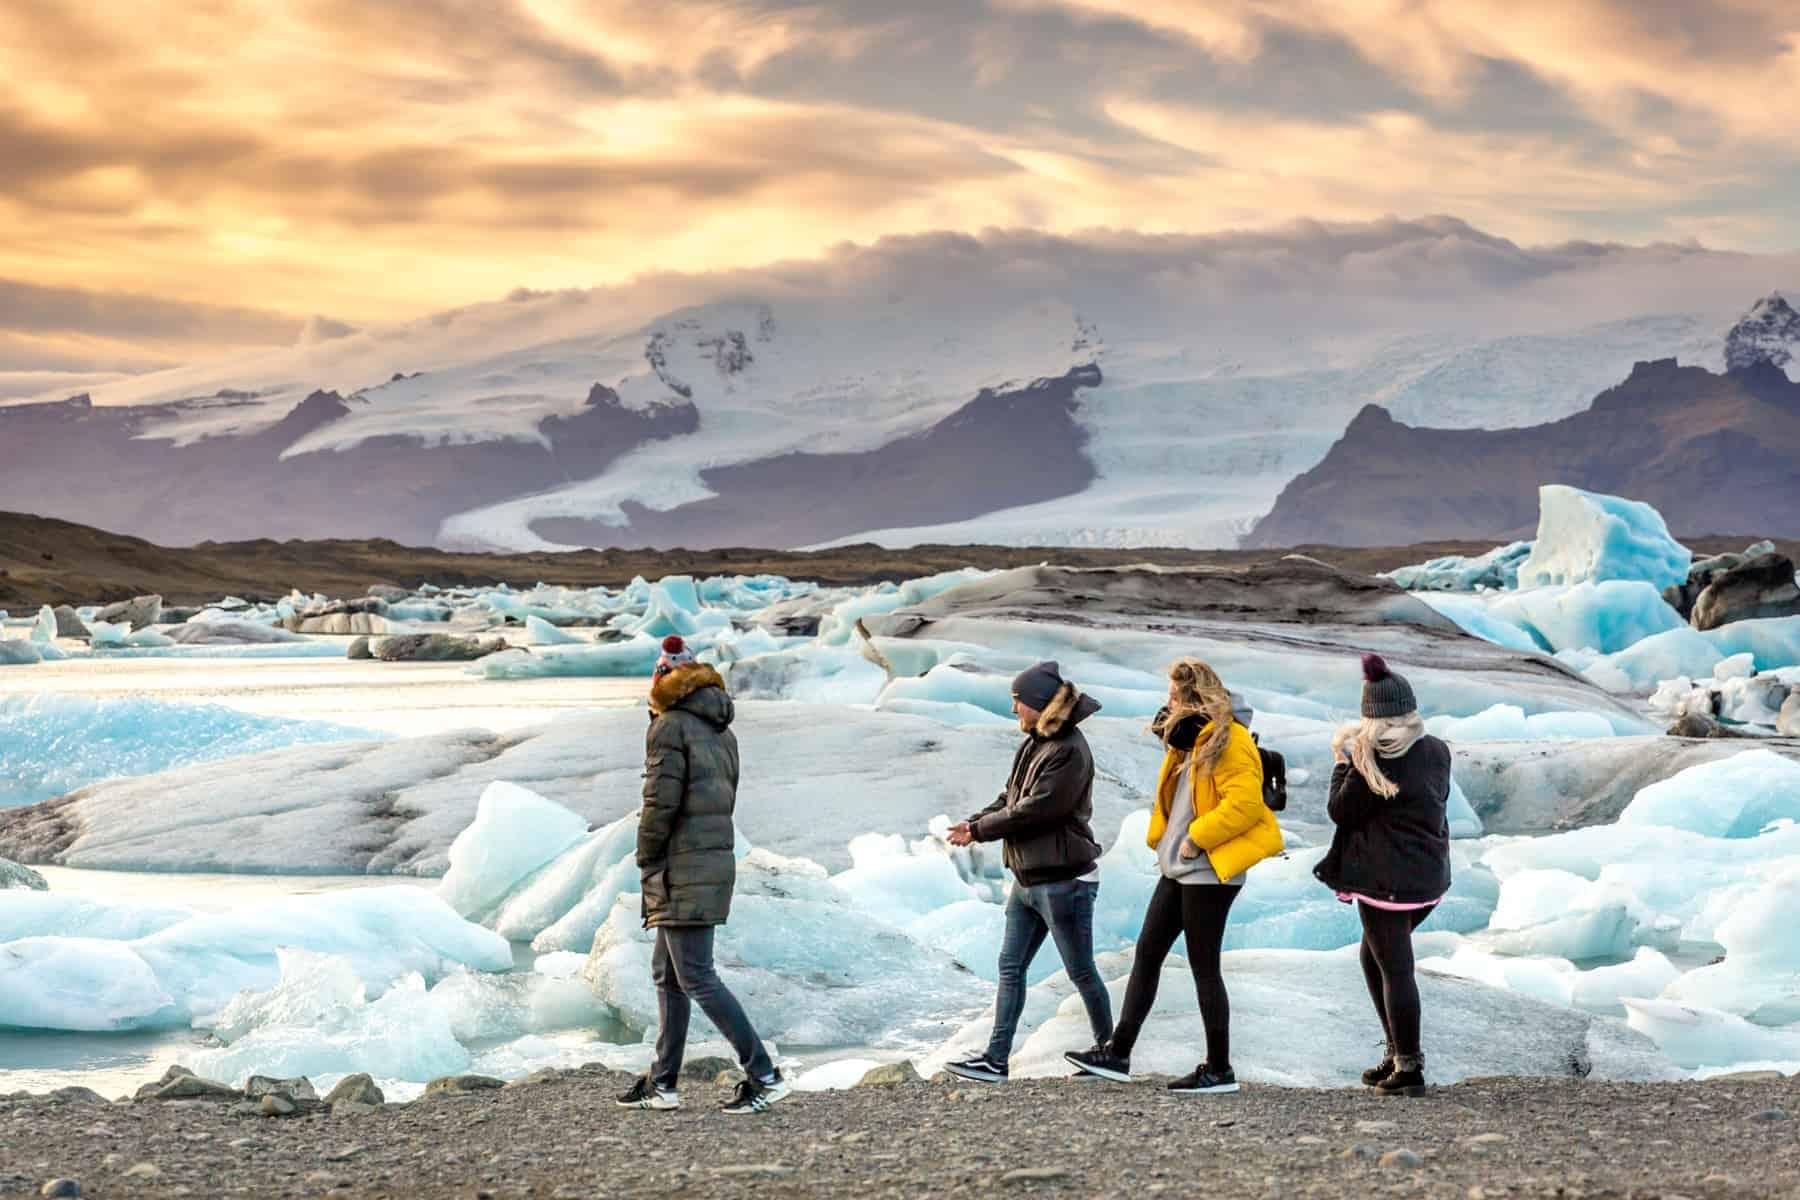 Jökulsárlón, Iceland - Nov 1st 2017 - Tourists and locals enjoying the Jökulsárlón iceberg lagoon with glacier in the background in Iceland